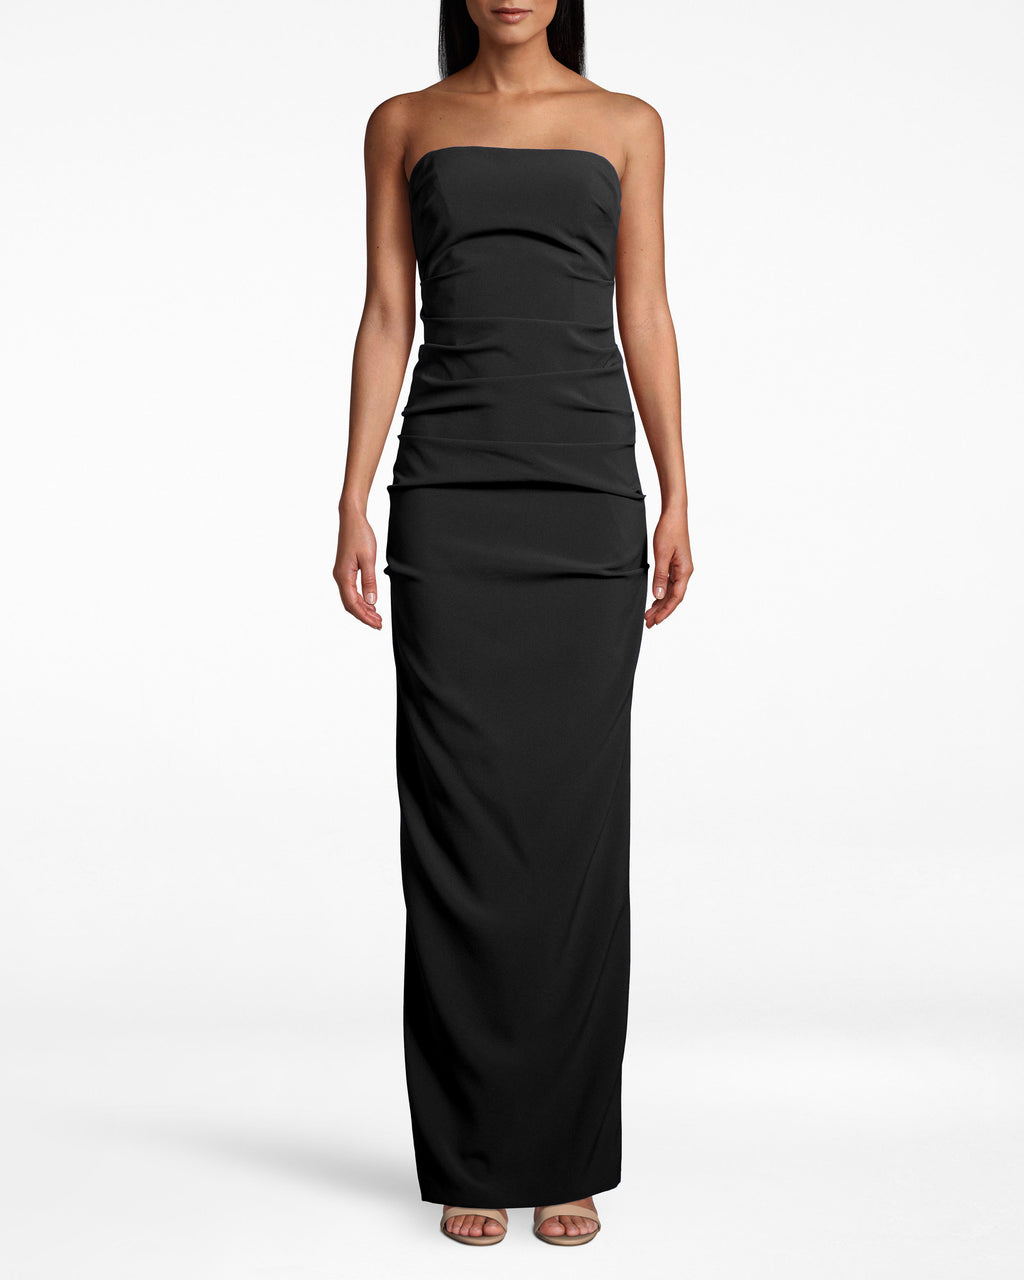 BN10038 - TECHY CREPE TUCK STRAPLESS GOWN - dresses - long - Take this strapless gown out tonight. The fabric gathers around the upper body, while the silhouette molds to your shape. Back zipper for closure.